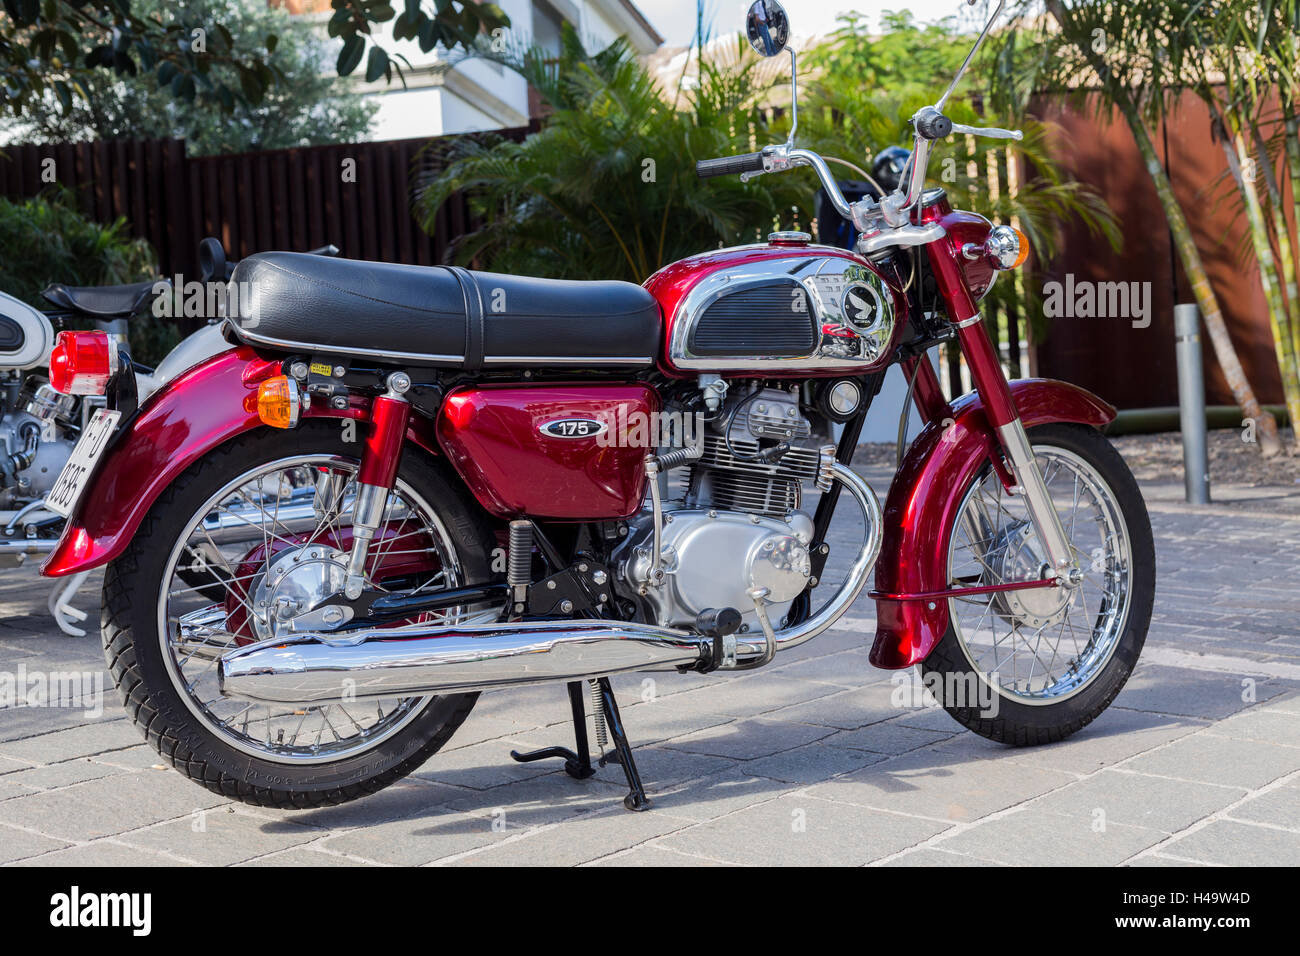 Honda Motorbike Not People Harley Stock Photos 1960s 50cc Bike 175cc From 1974 Image